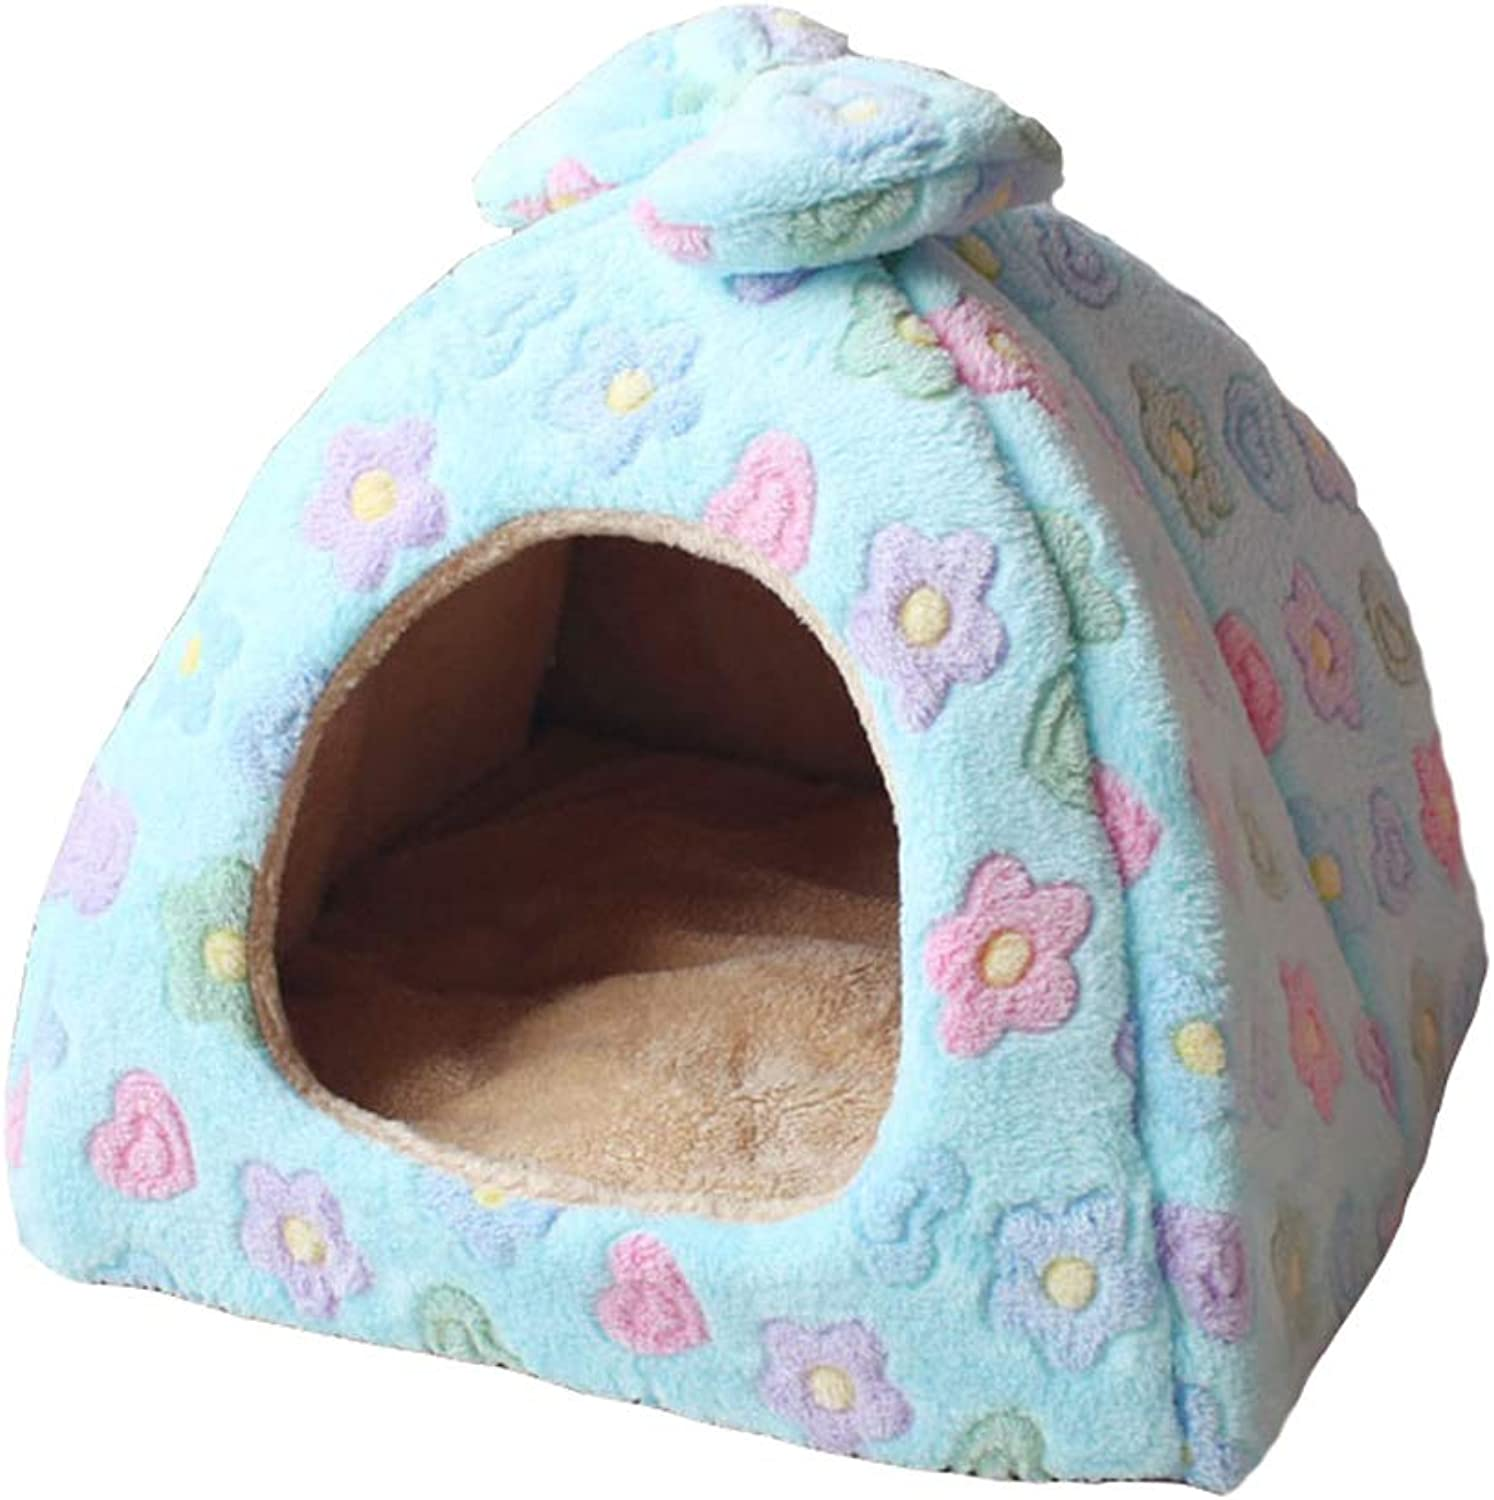 Memory Foam Solid Pet Bed Yurt Cat Litter Small and Mediumsized Dog Teddy Dog House Four Seasons Winter and Summer Dualuse Foldable Flower Dog Bed Medium Large (Size   Large)